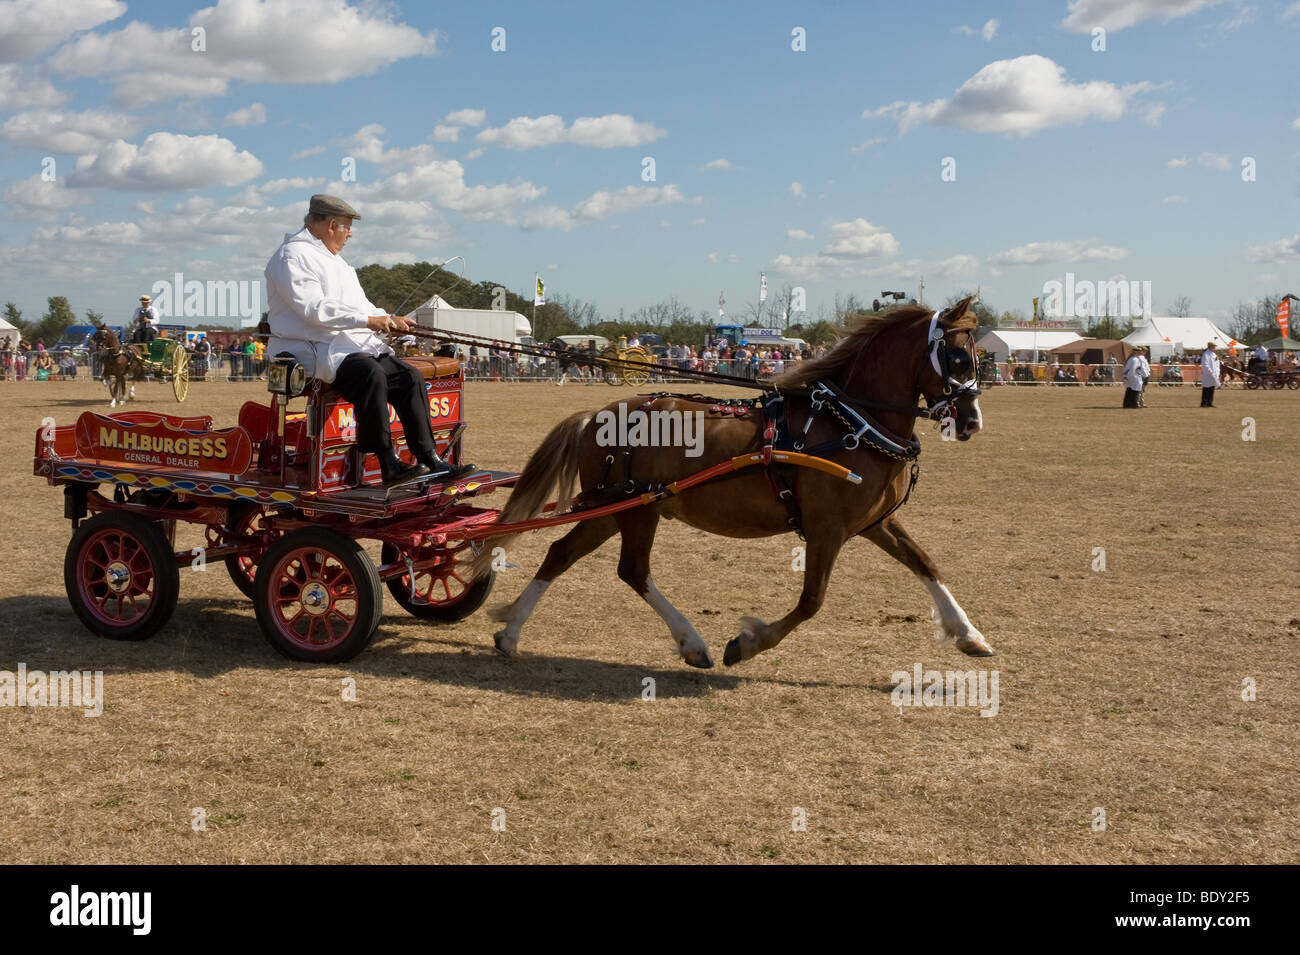 A horse pulling a small decorated cart at a country show in Essex. - Stock Image